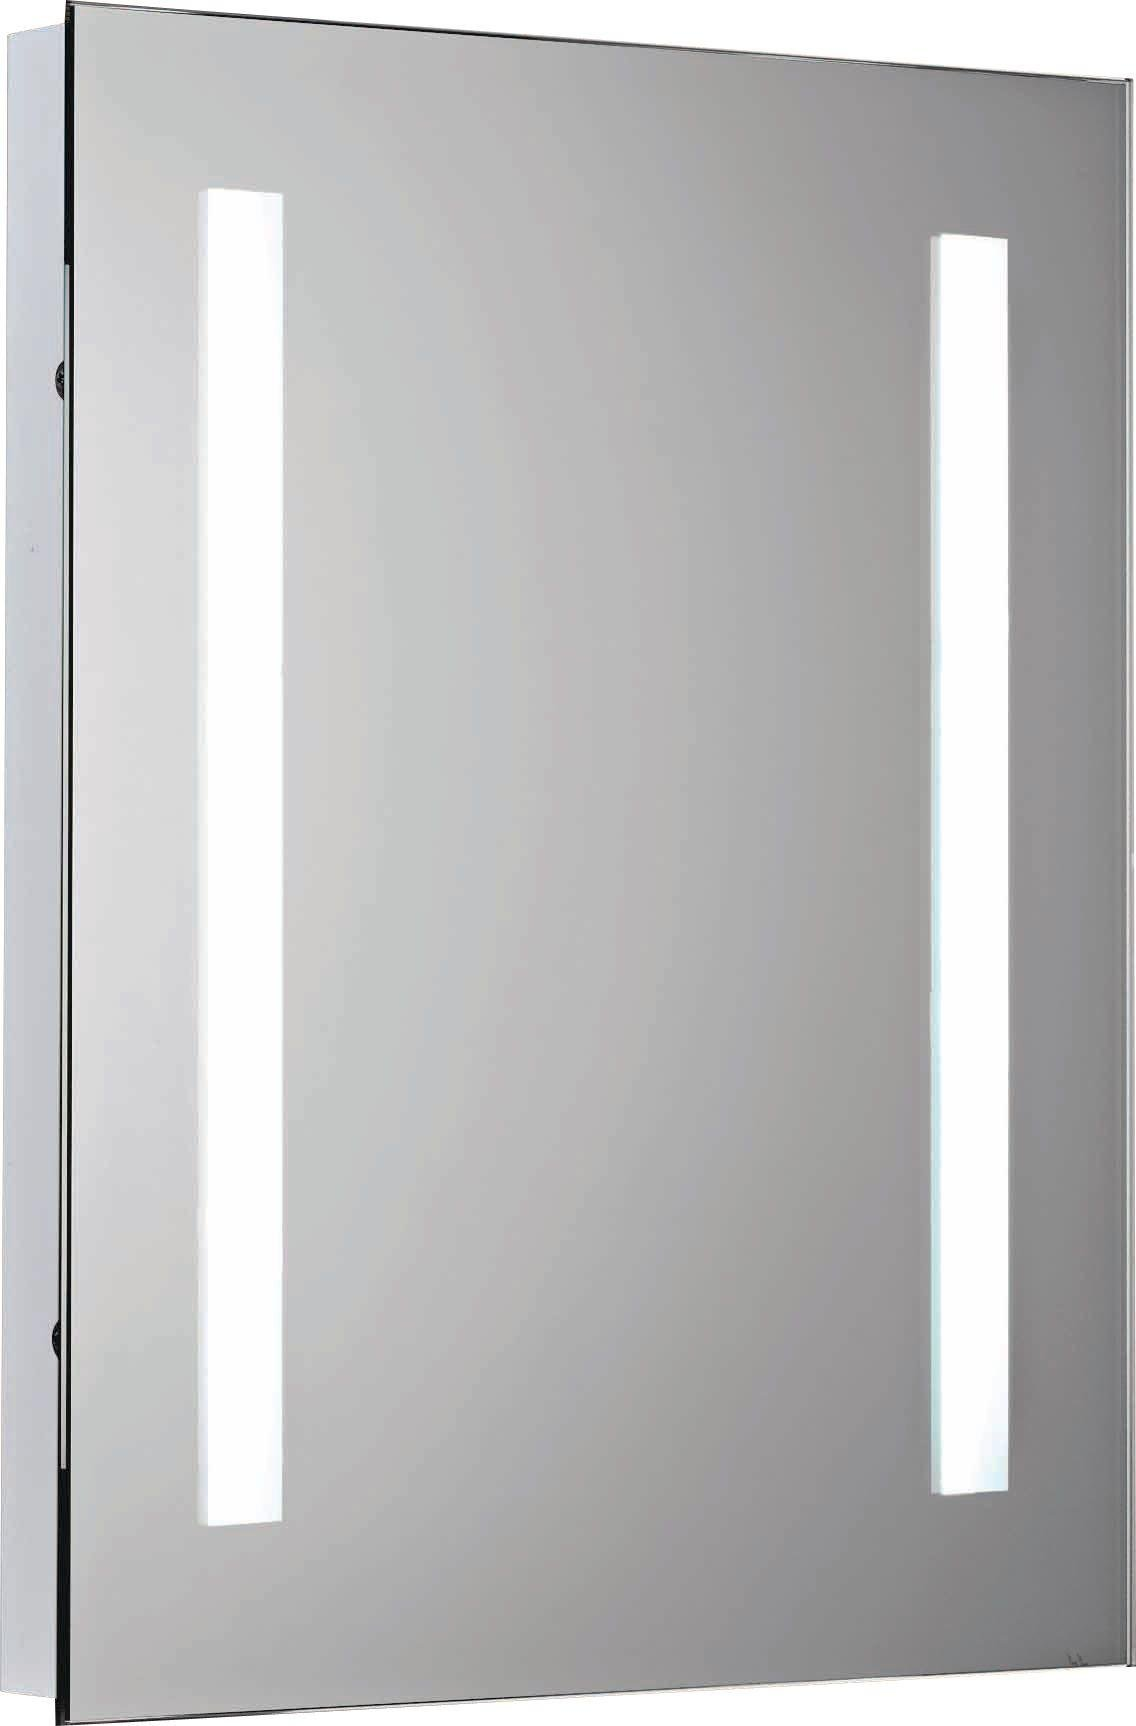 Bathroom Light Pulls Argos buy collection rectangular bathroom mirror with shaver point at